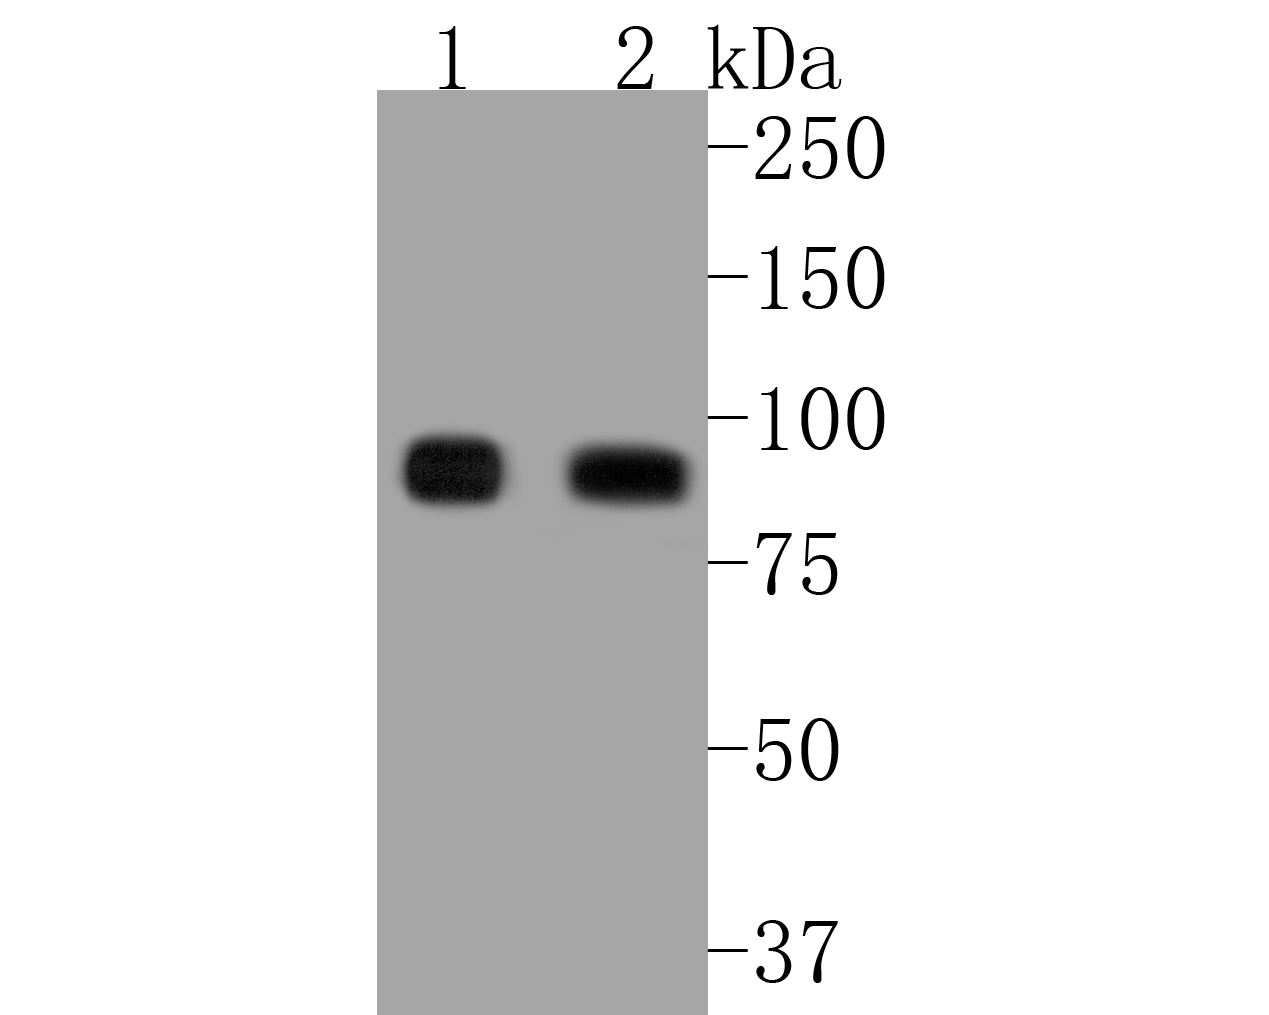 Western blot analysis of ICAM1 on different lysates. Proteins were transferred to a PVDF membrane and blocked with 5% BSA in PBS for 1 hour at room temperature. The primary antibody (ET1609-46, 1/500) was used in 5% BSA at room temperature for 2 hours. Goat Anti-Rabbit IgG - HRP Secondary Antibody (HA1001) at 1:5,000 dilution was used for 1 hour at room temperature.<br /> Positive control: <br /> Lane 1: Raji cell lysate<br /> Lane 2: HUVEC cell lysate